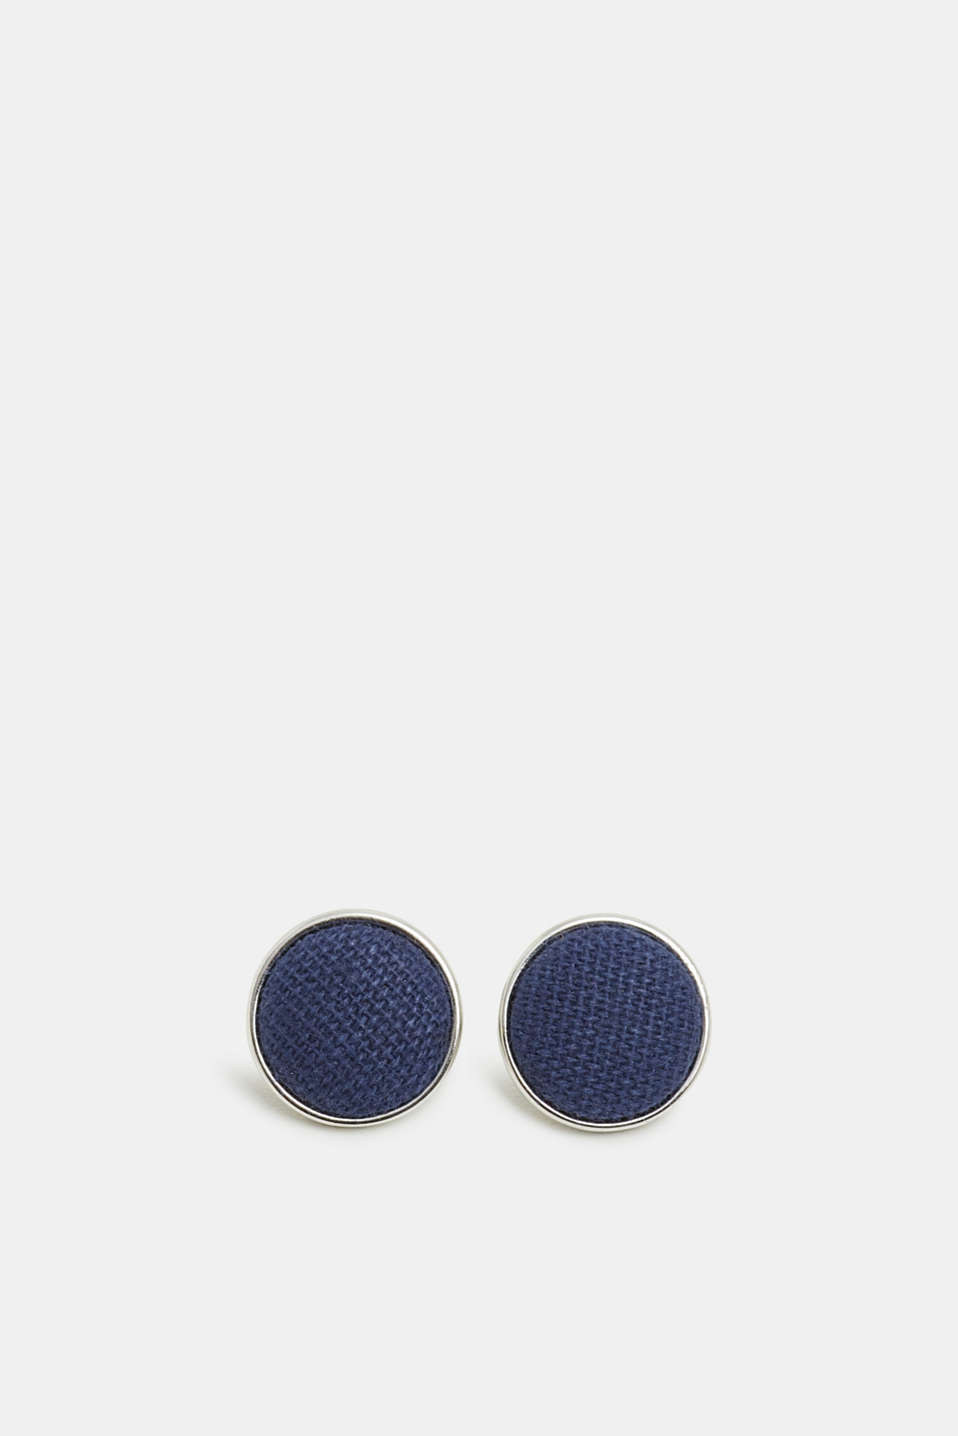 Esprit - Textile-covered stud earrings